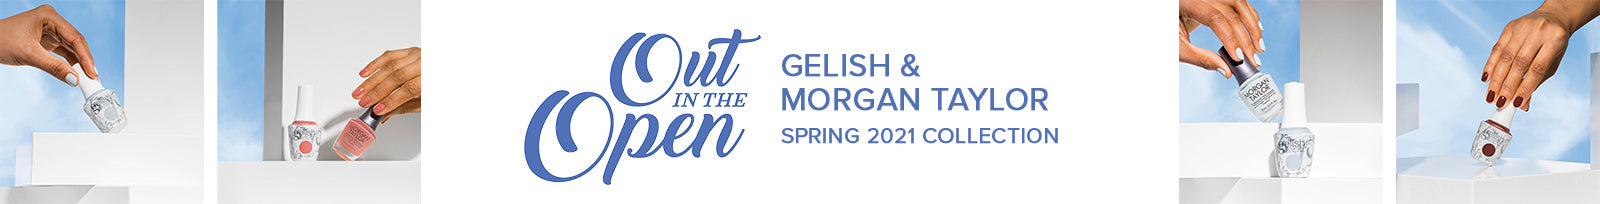 Gelish & Morgan Taylor - Out In The Open Spring 2021 Collection